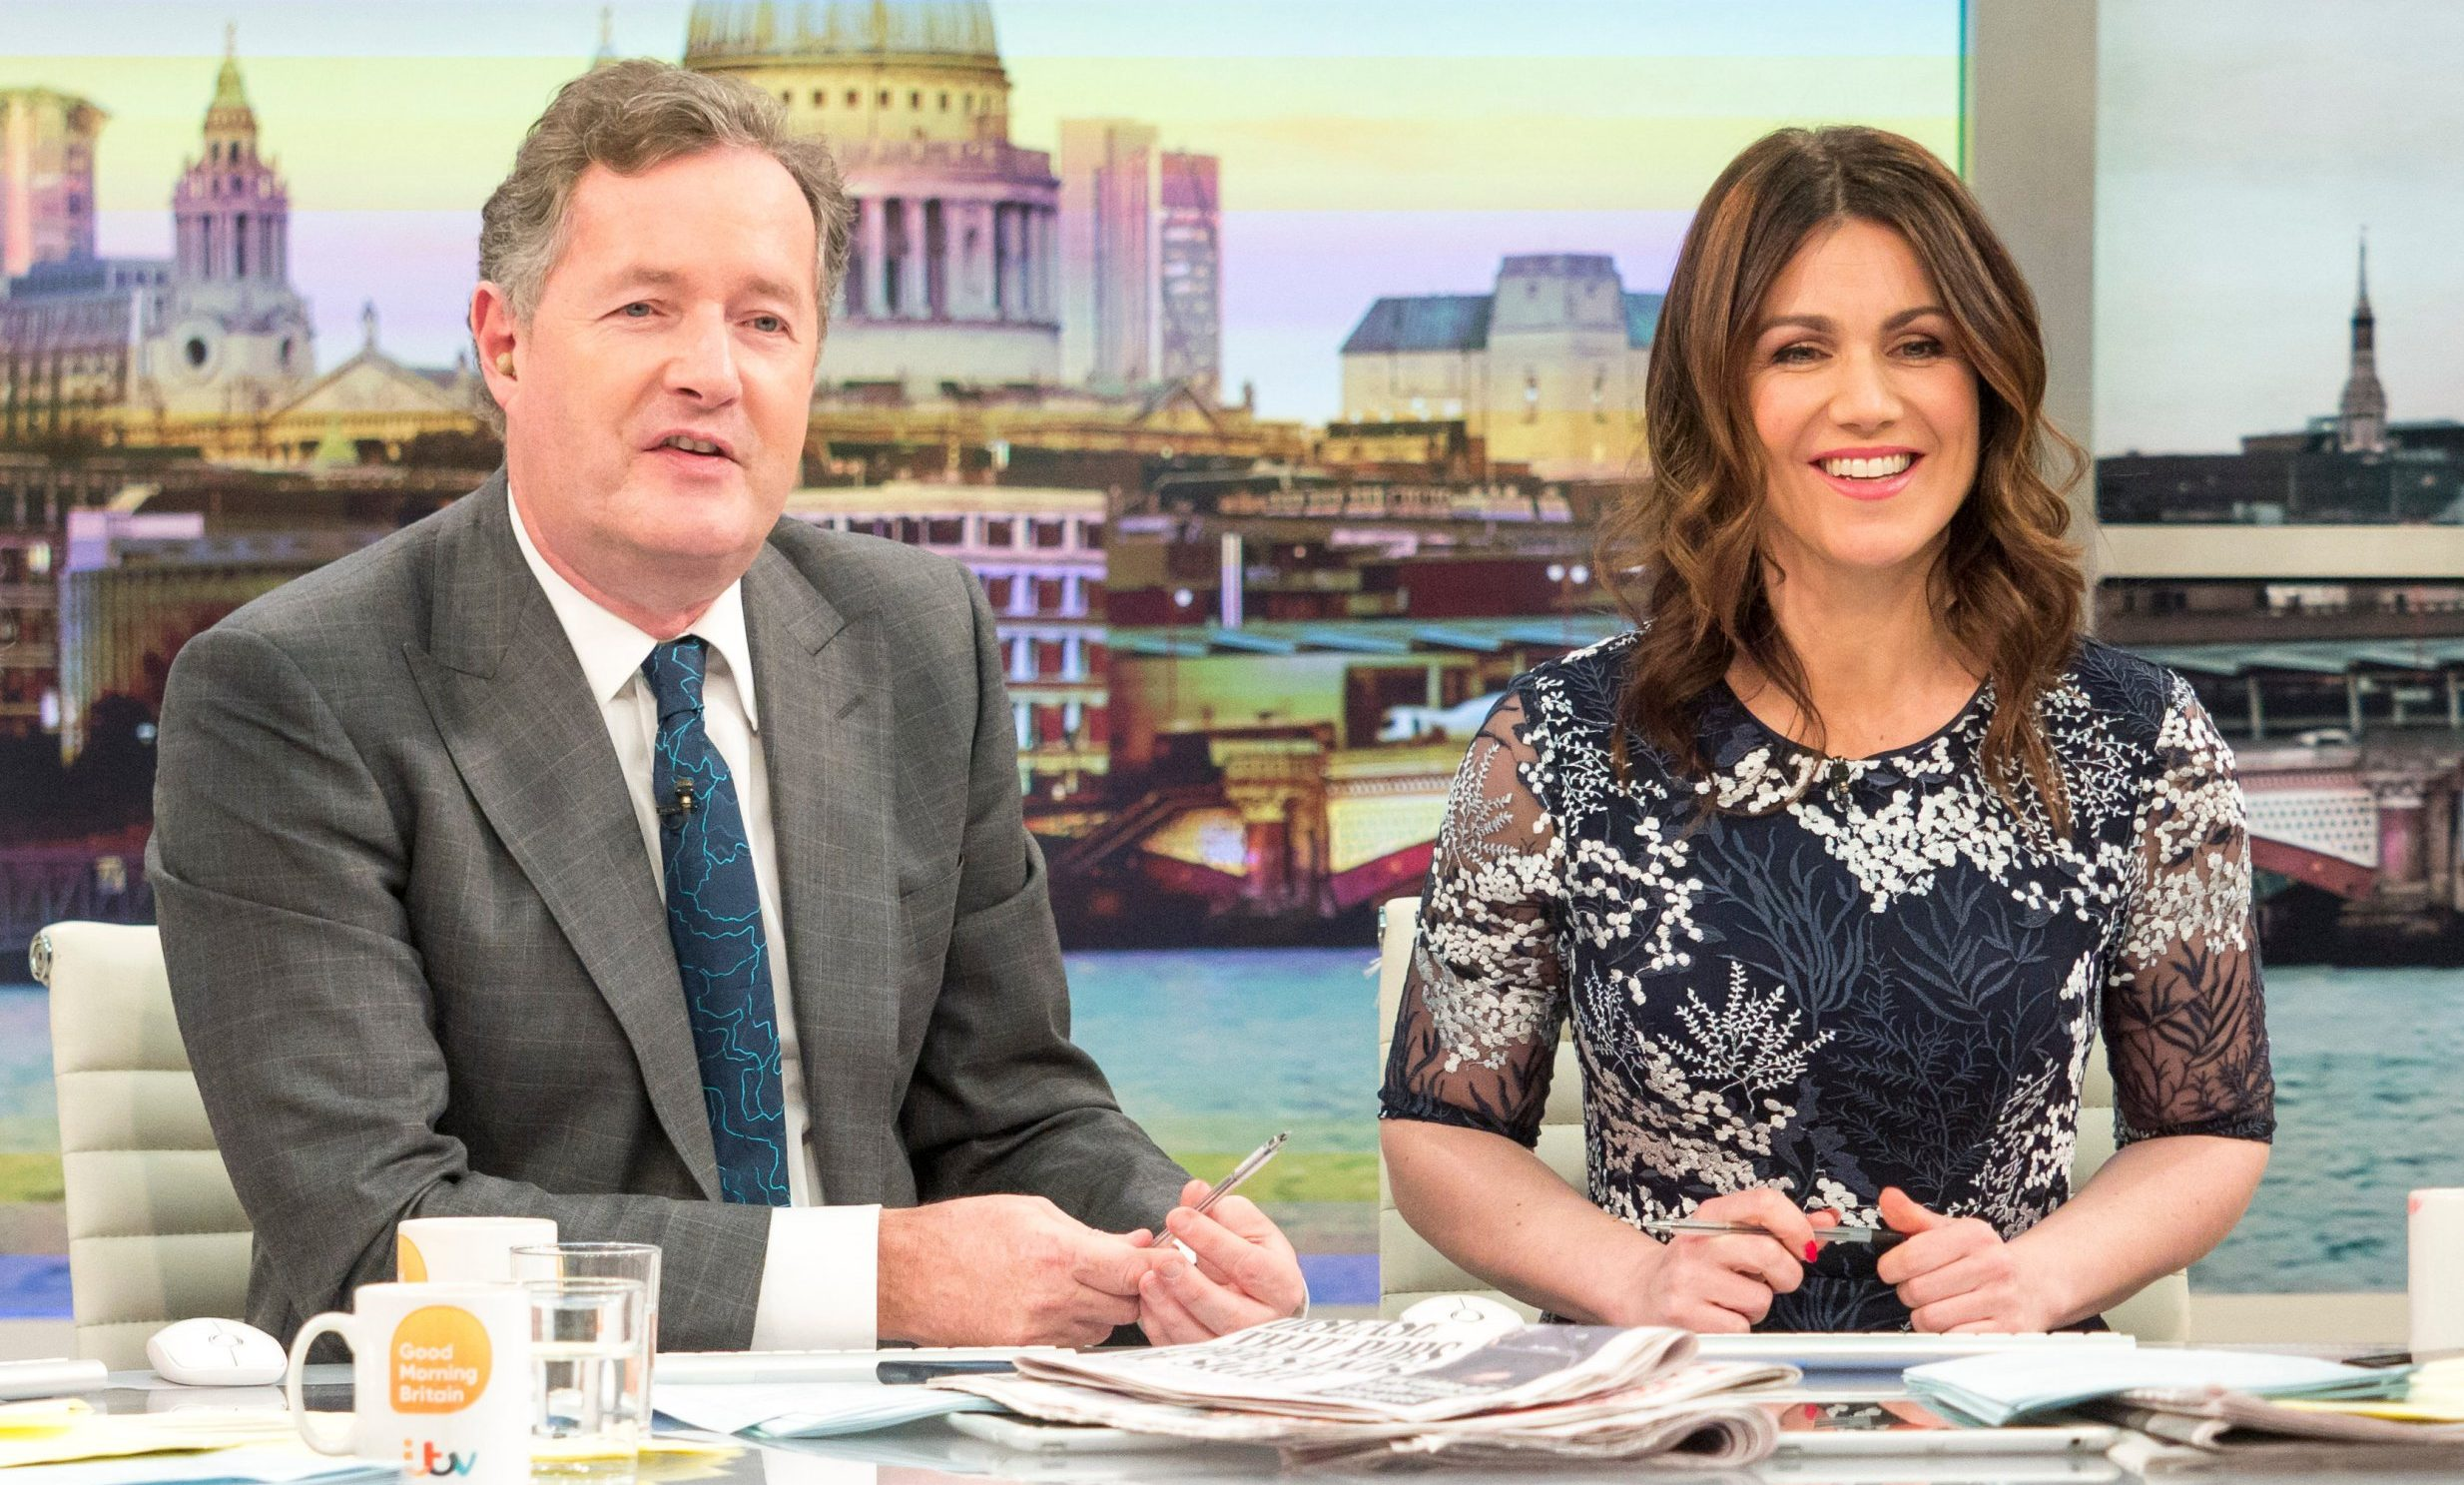 EDITORIAL USE ONLY. NO MERCHANDISING Mandatory Credit: Photo by S Meddle/ITV/REX/Shutterstock (9471177bl) Piers Morgan and Susanna Reid 'Good Morning Britain' TV show, London, UK - 20 Mar 2018